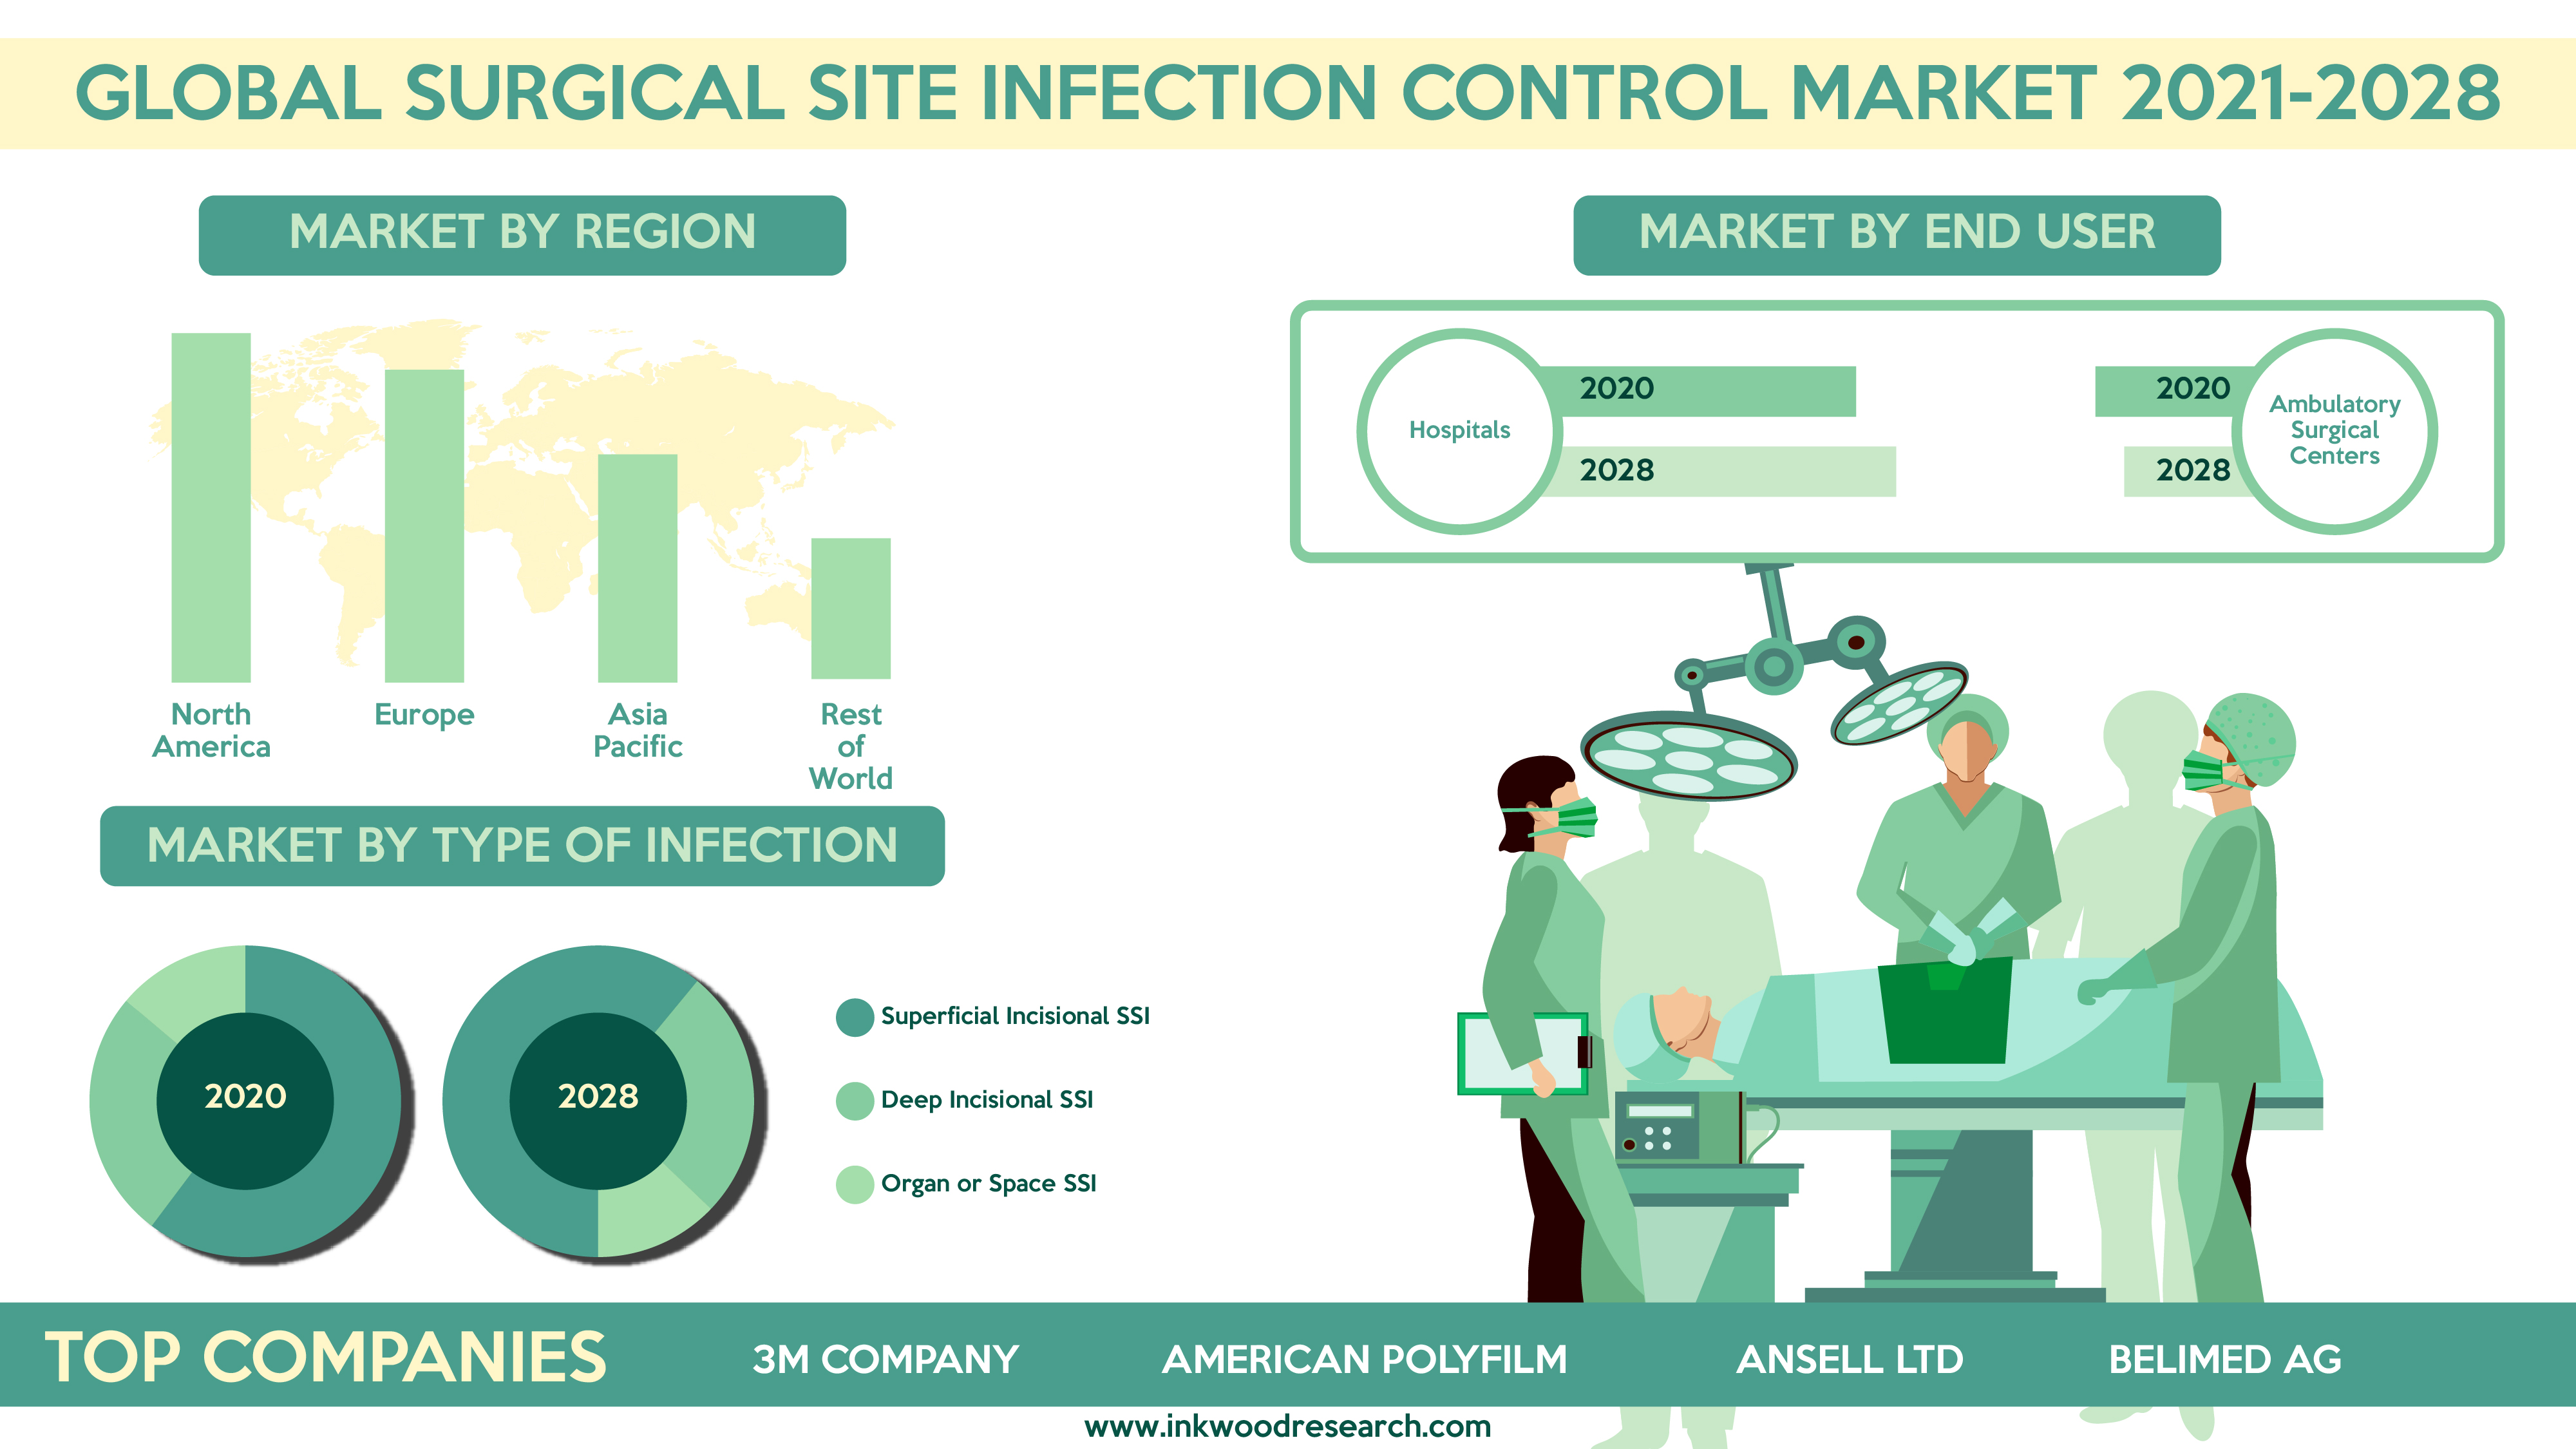 Regulatory Guidelines is surging Growth in the Global Surgical Site Infection Control Market